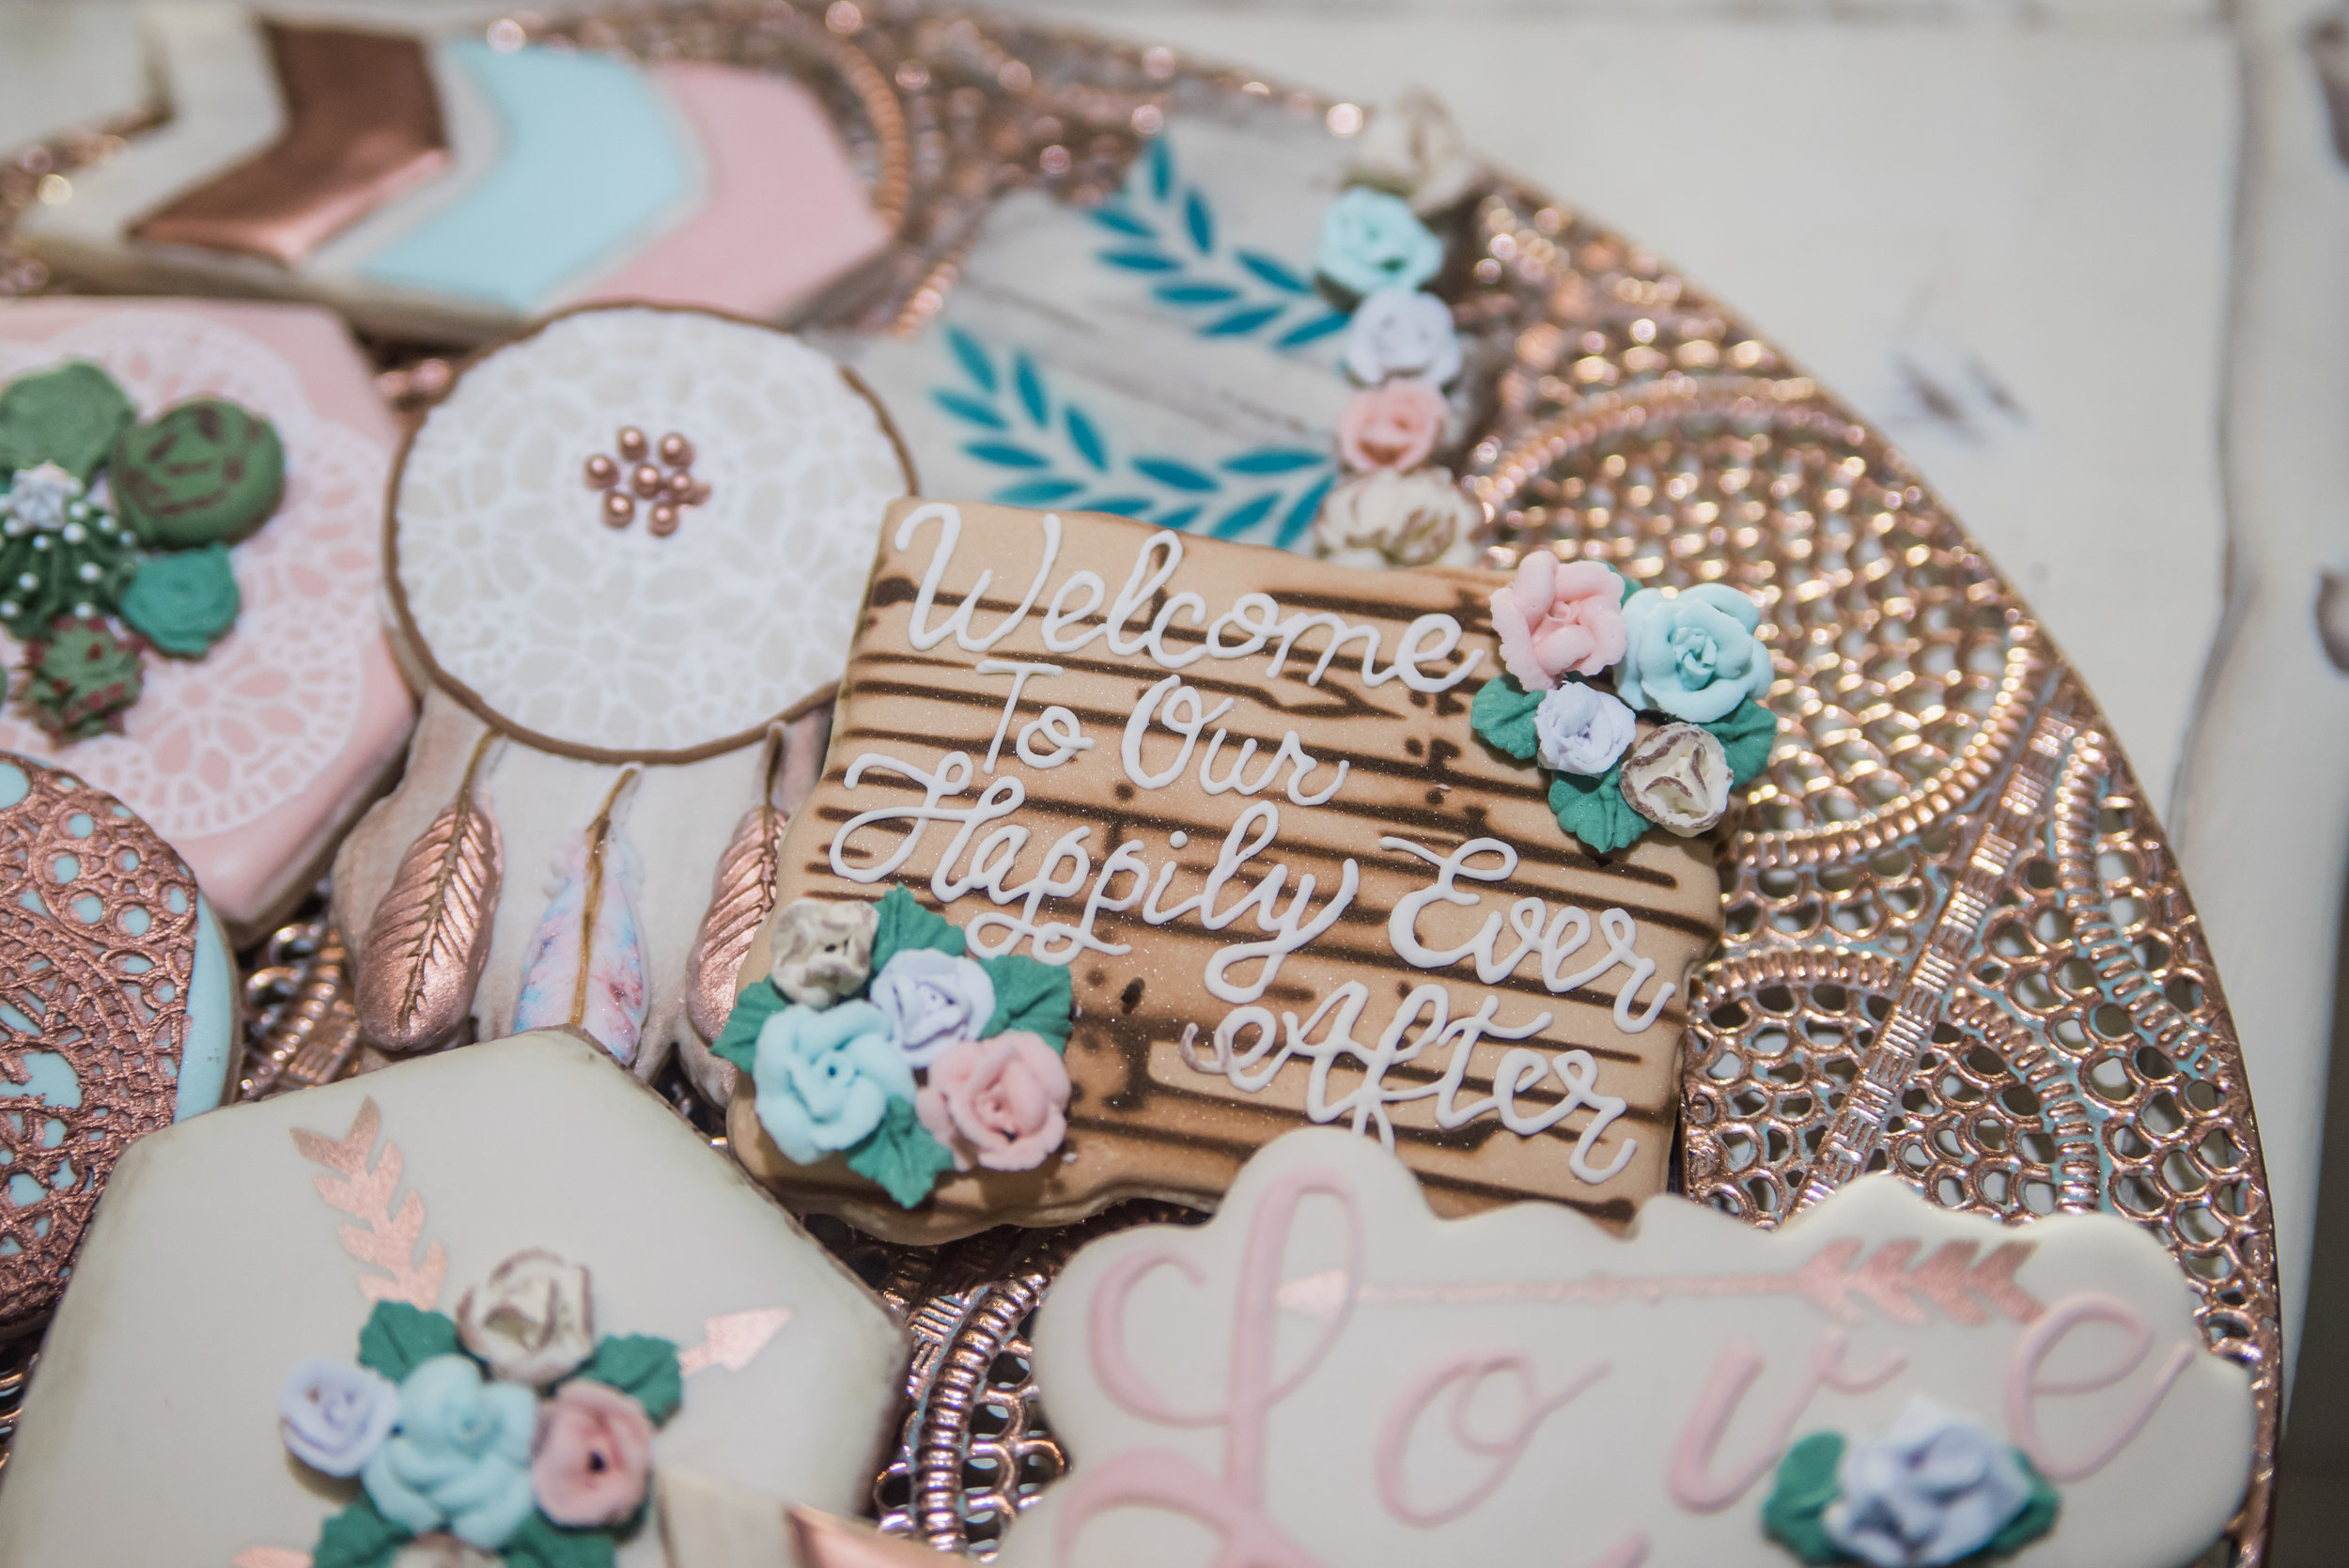 Have you seen more stunning cookies? Laurel of Kiss Me Cookies creates the most beautiful and decadent cookies around. You can tell she puts all her heart into her creations and they truly are works of art.